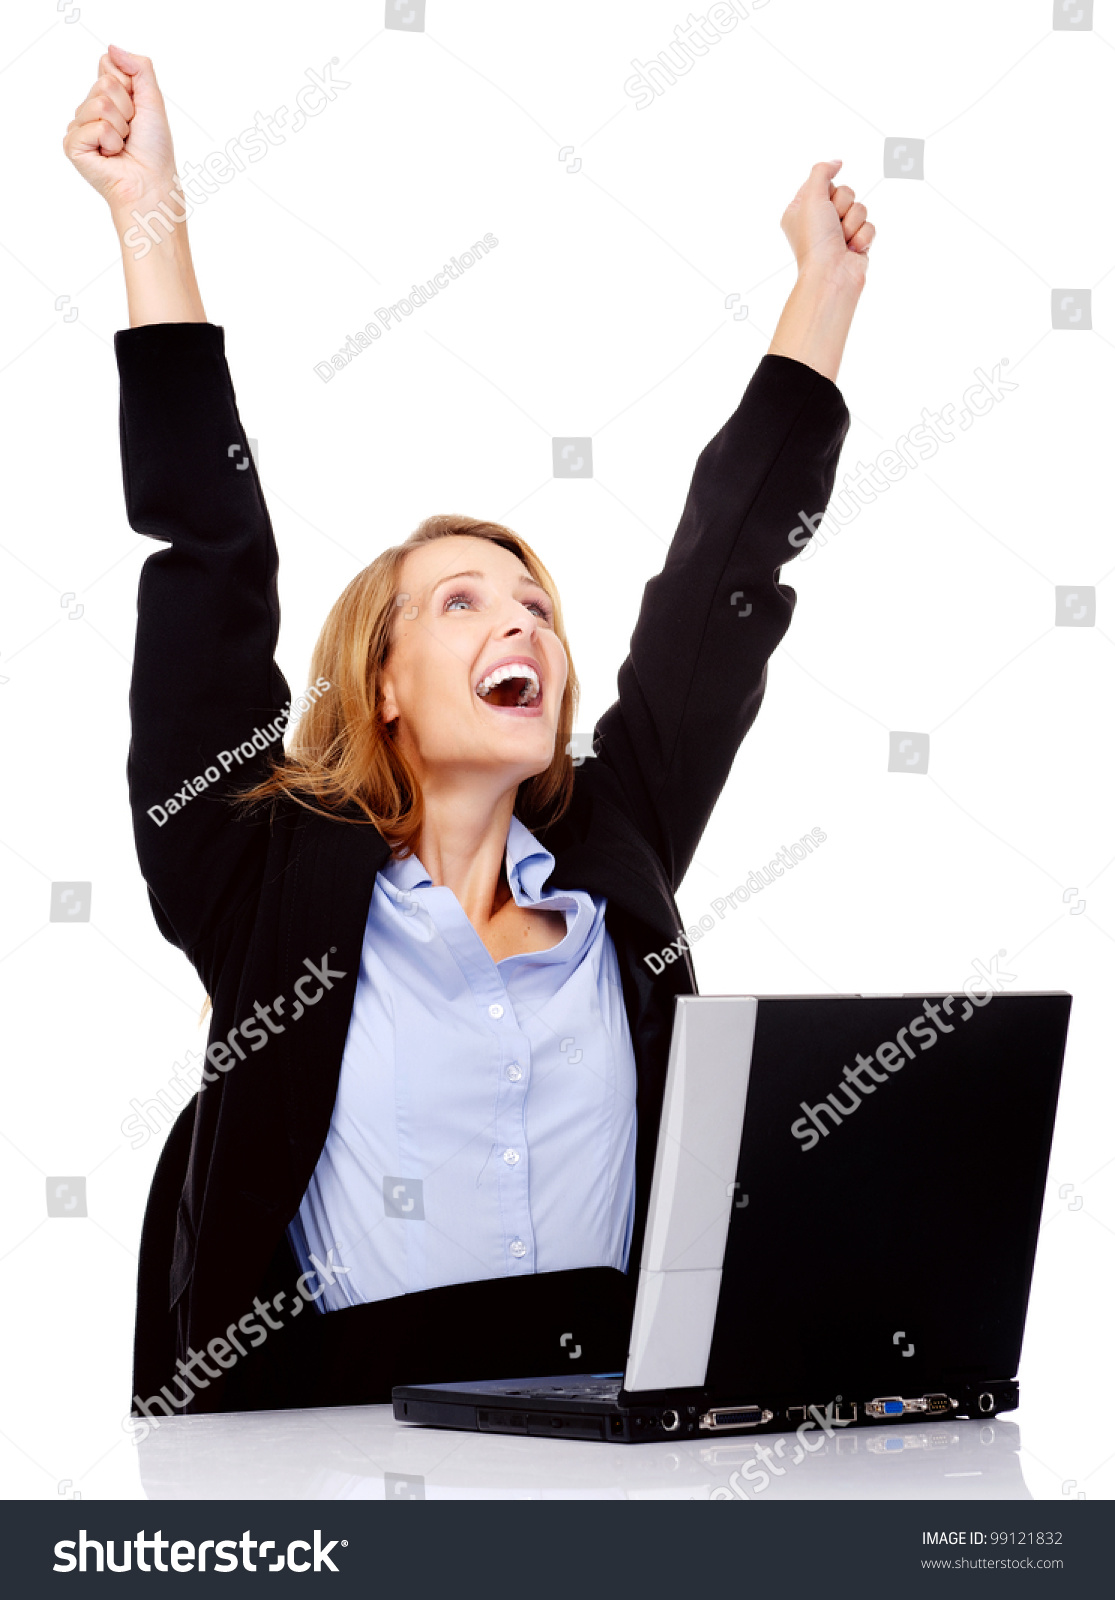 excited w celebrating promotion her job stock photo  excited w celebrating a promotion in her job